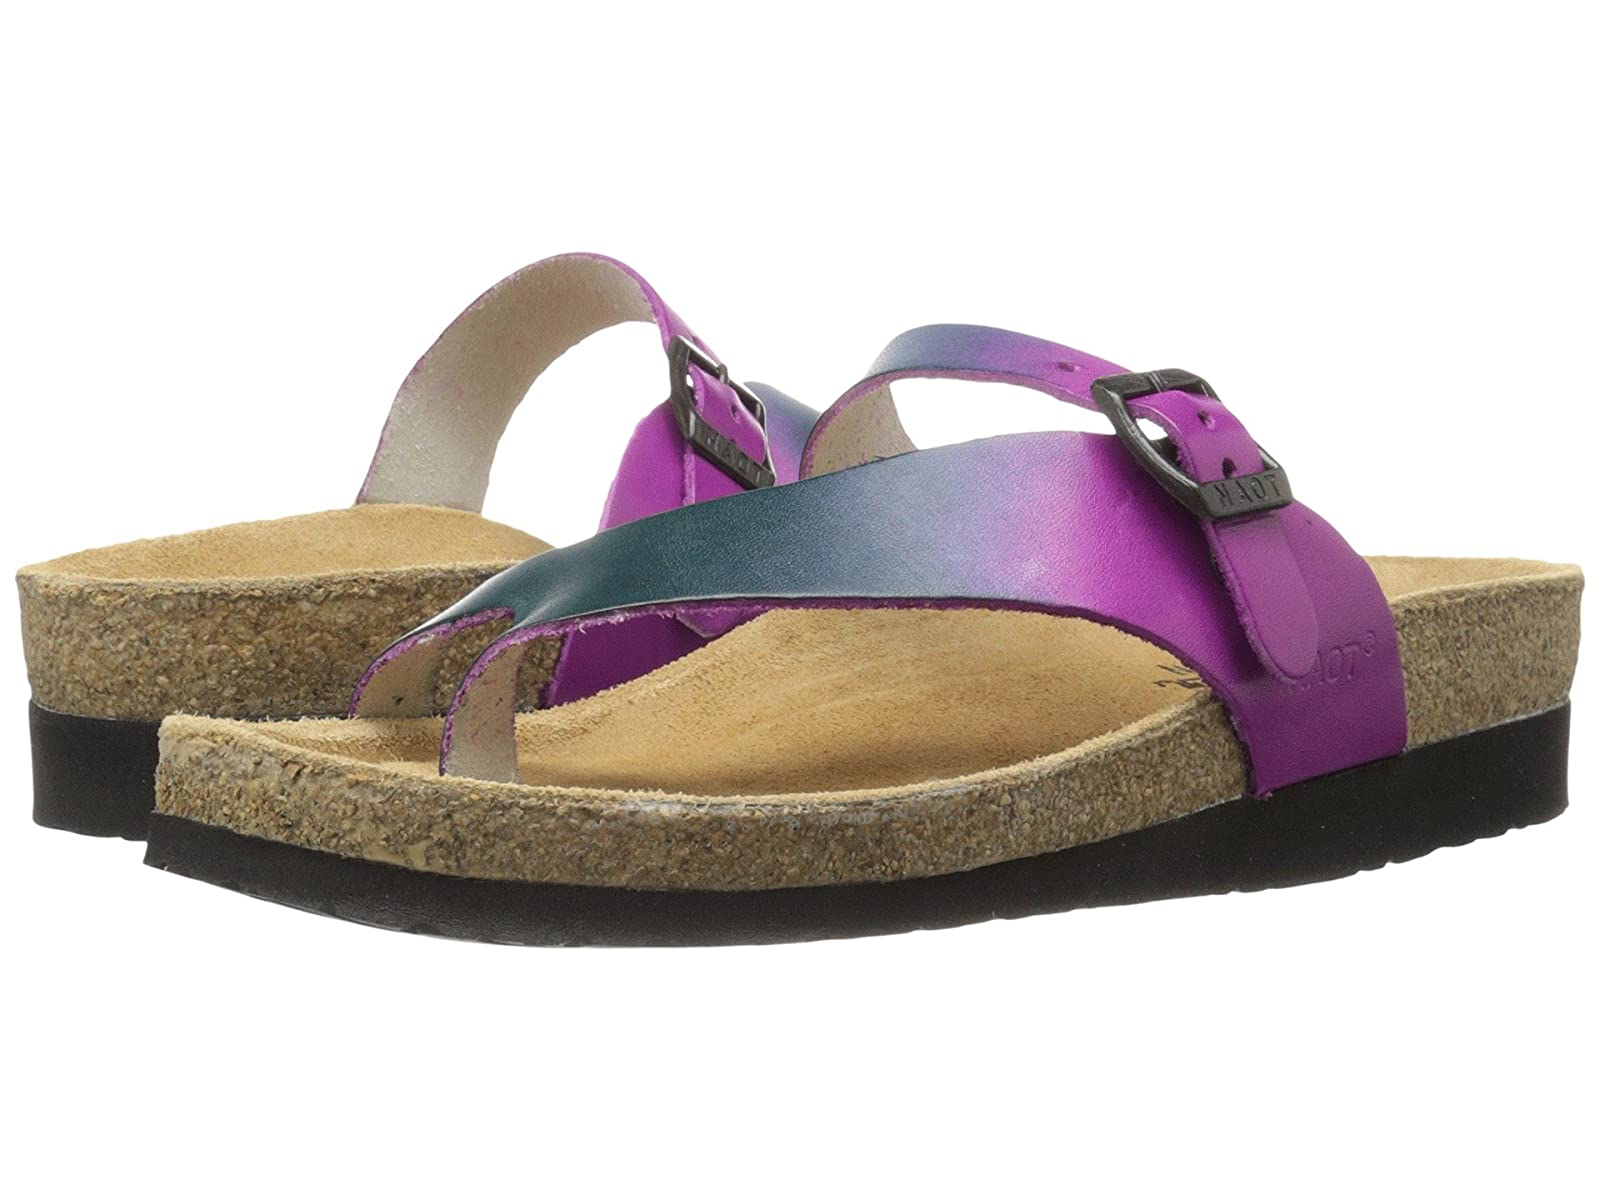 Naot Tahoe - Hand CraftedAtmospheric grades have affordable shoes